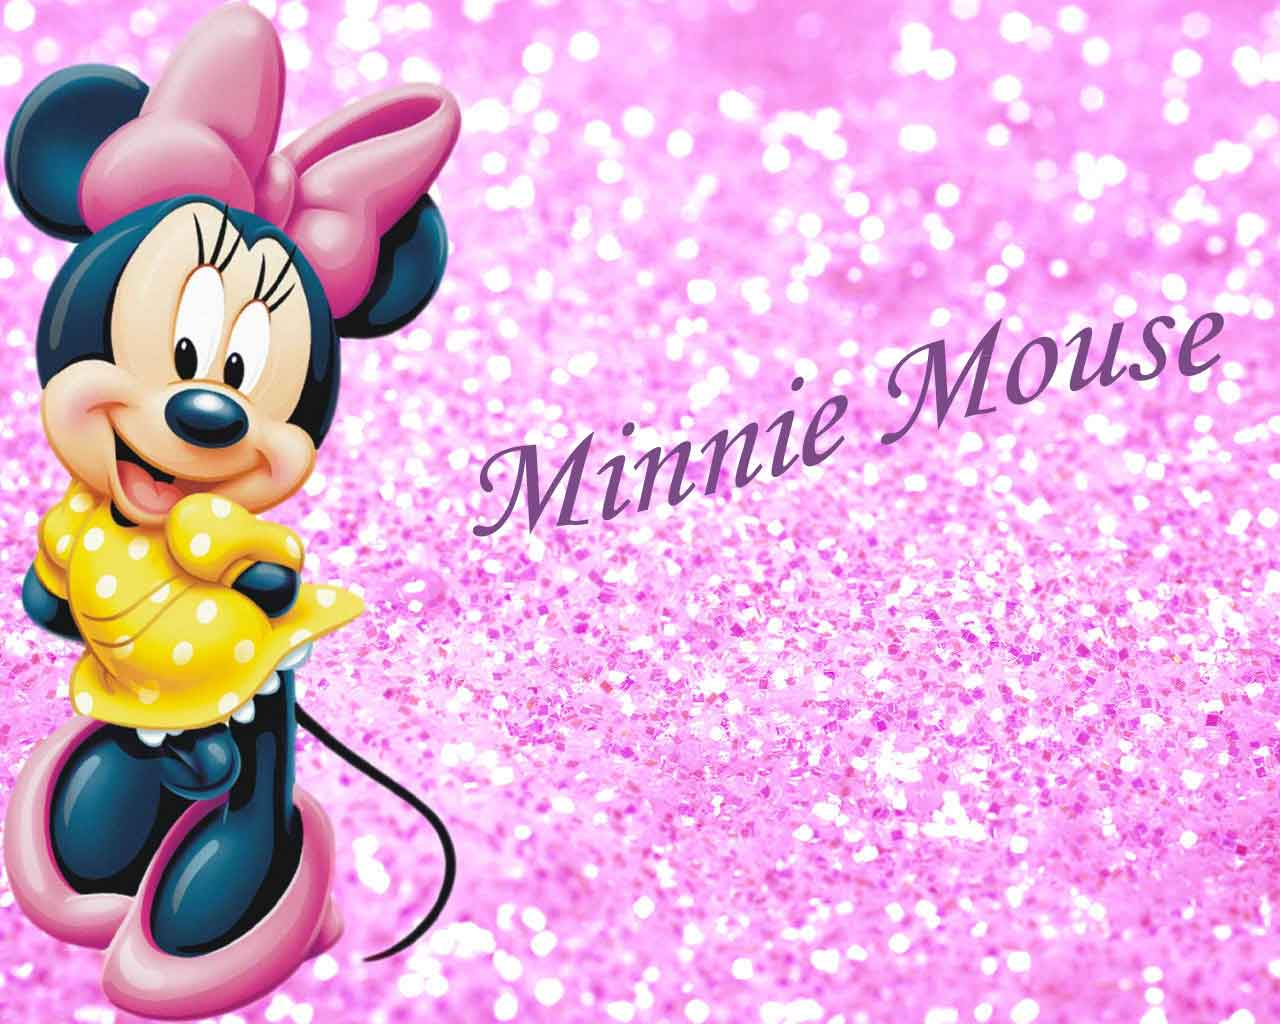 Mickey Minnie Wallpapers Group × Minnie Mouse Wallpapers HD